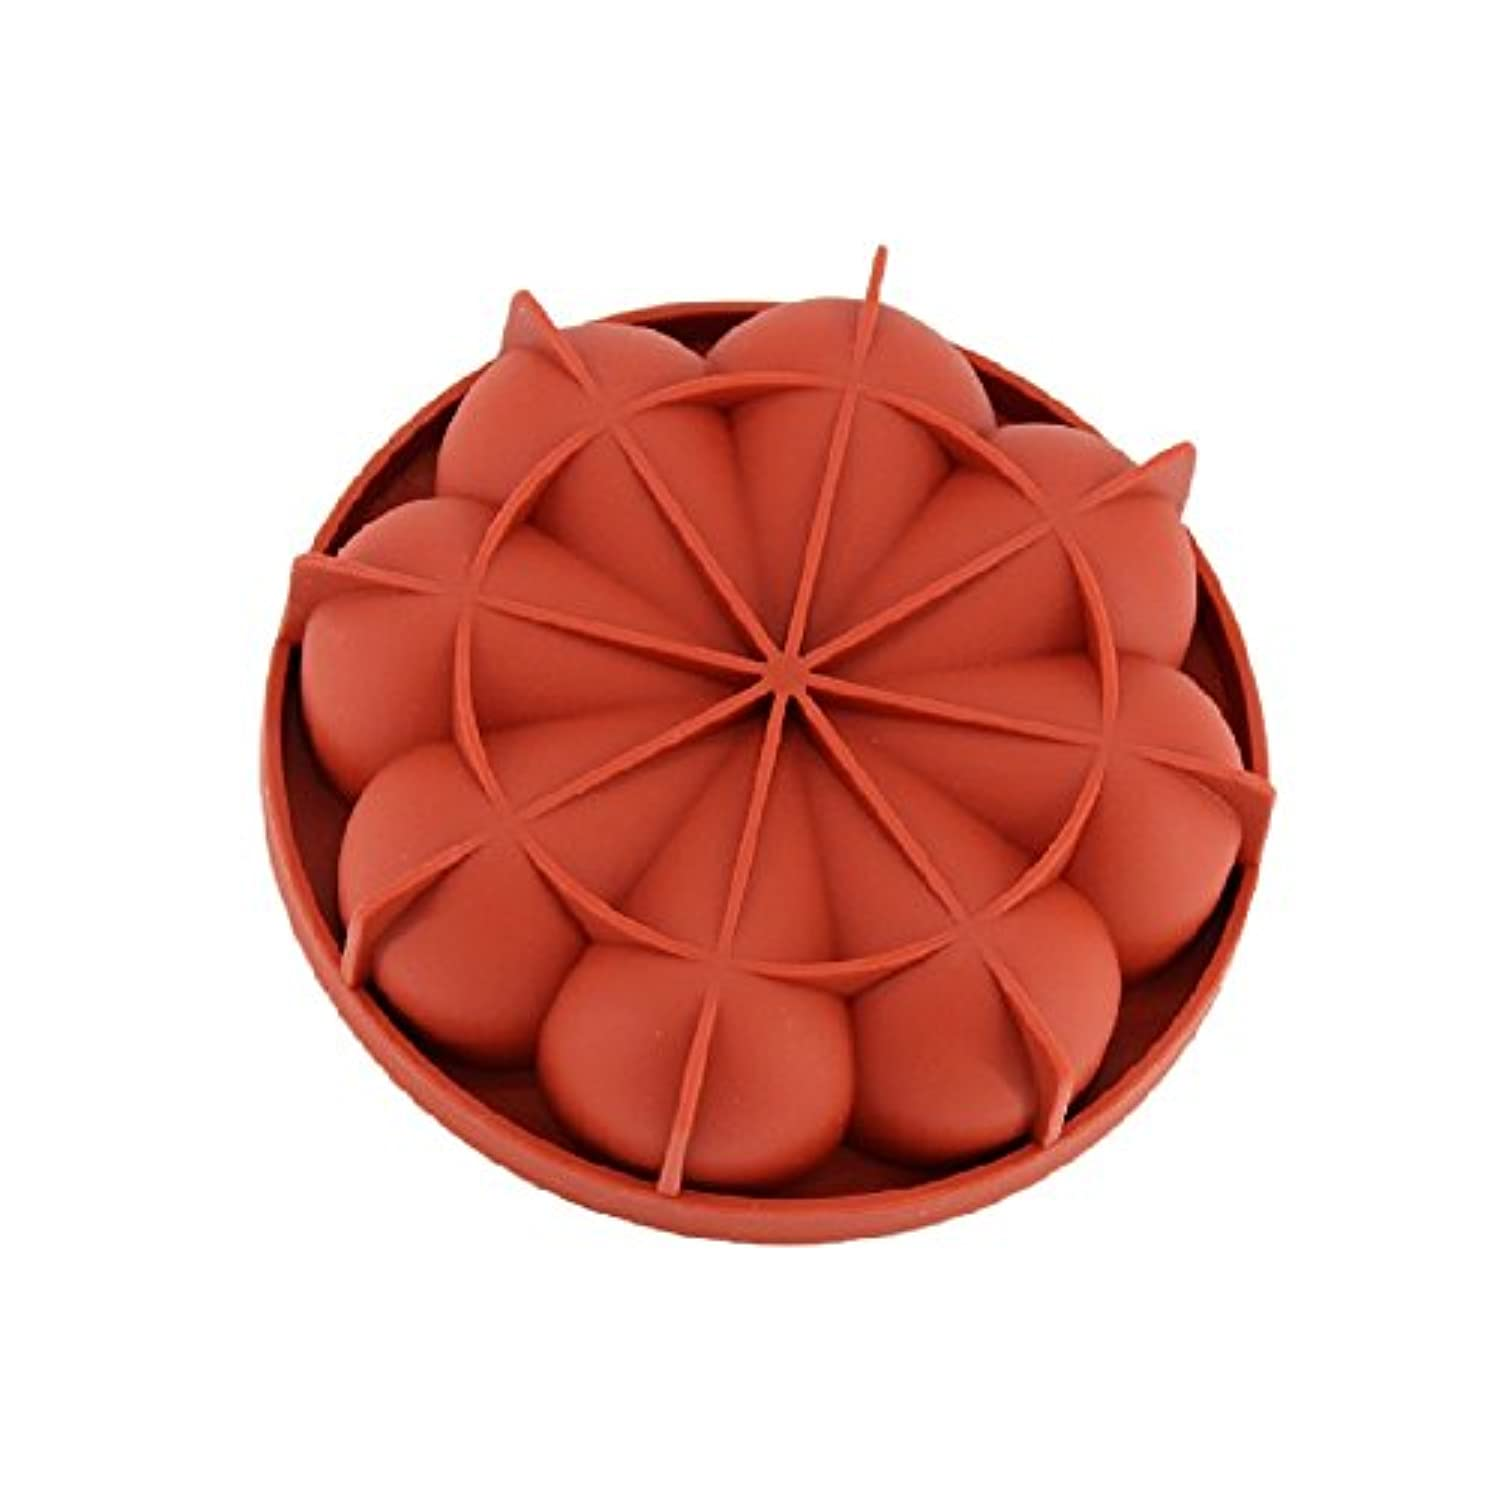 New Arrival Wine Red Silicone 3D Irregular Petals Shape Mold for Mousse Cake Pudding Ice Cream Bread Brownie Bakeware Tools